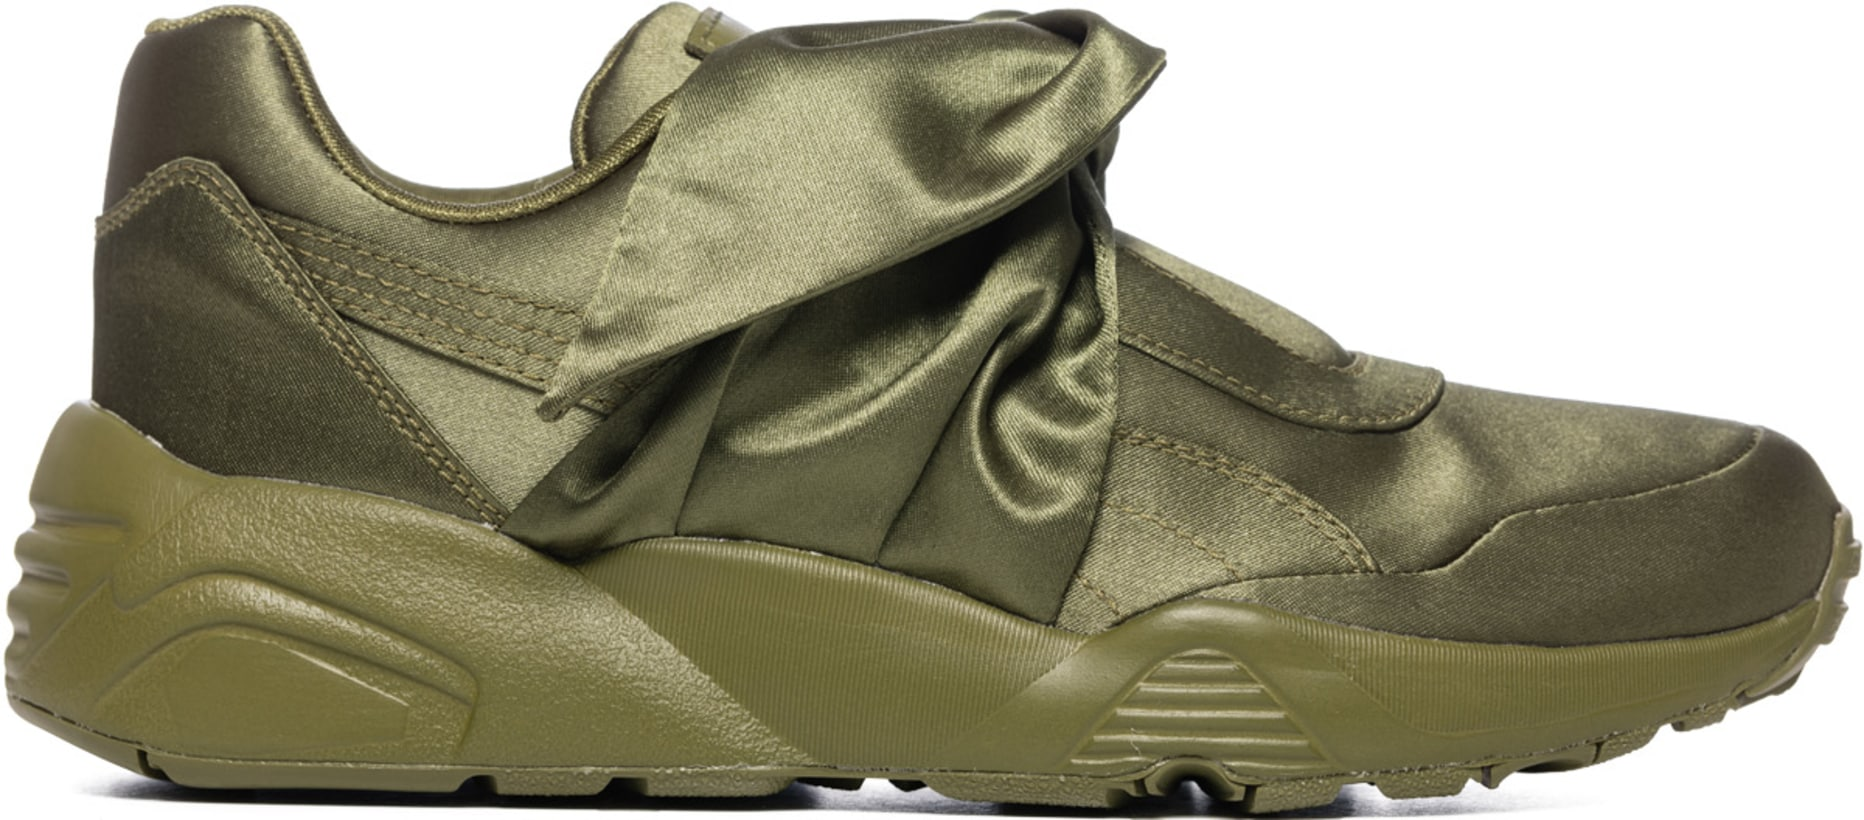 pretty nice 53181 bb047 Puma - Fenty Bow Sneakers - Olive Branch/Oliver Branch